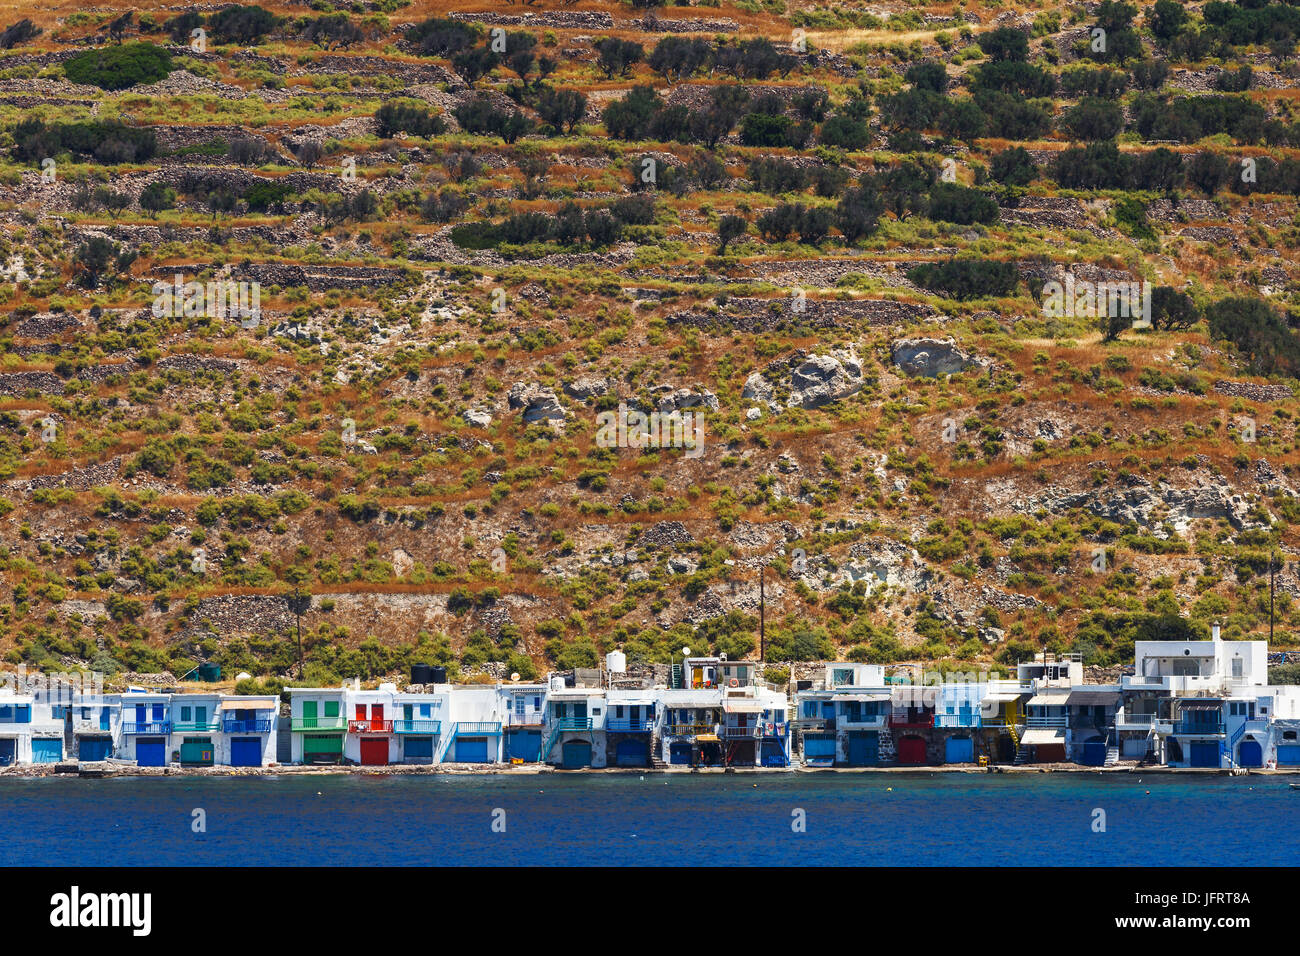 Klima village on the coast of Milos island as seen from the ferry. - Stock Image